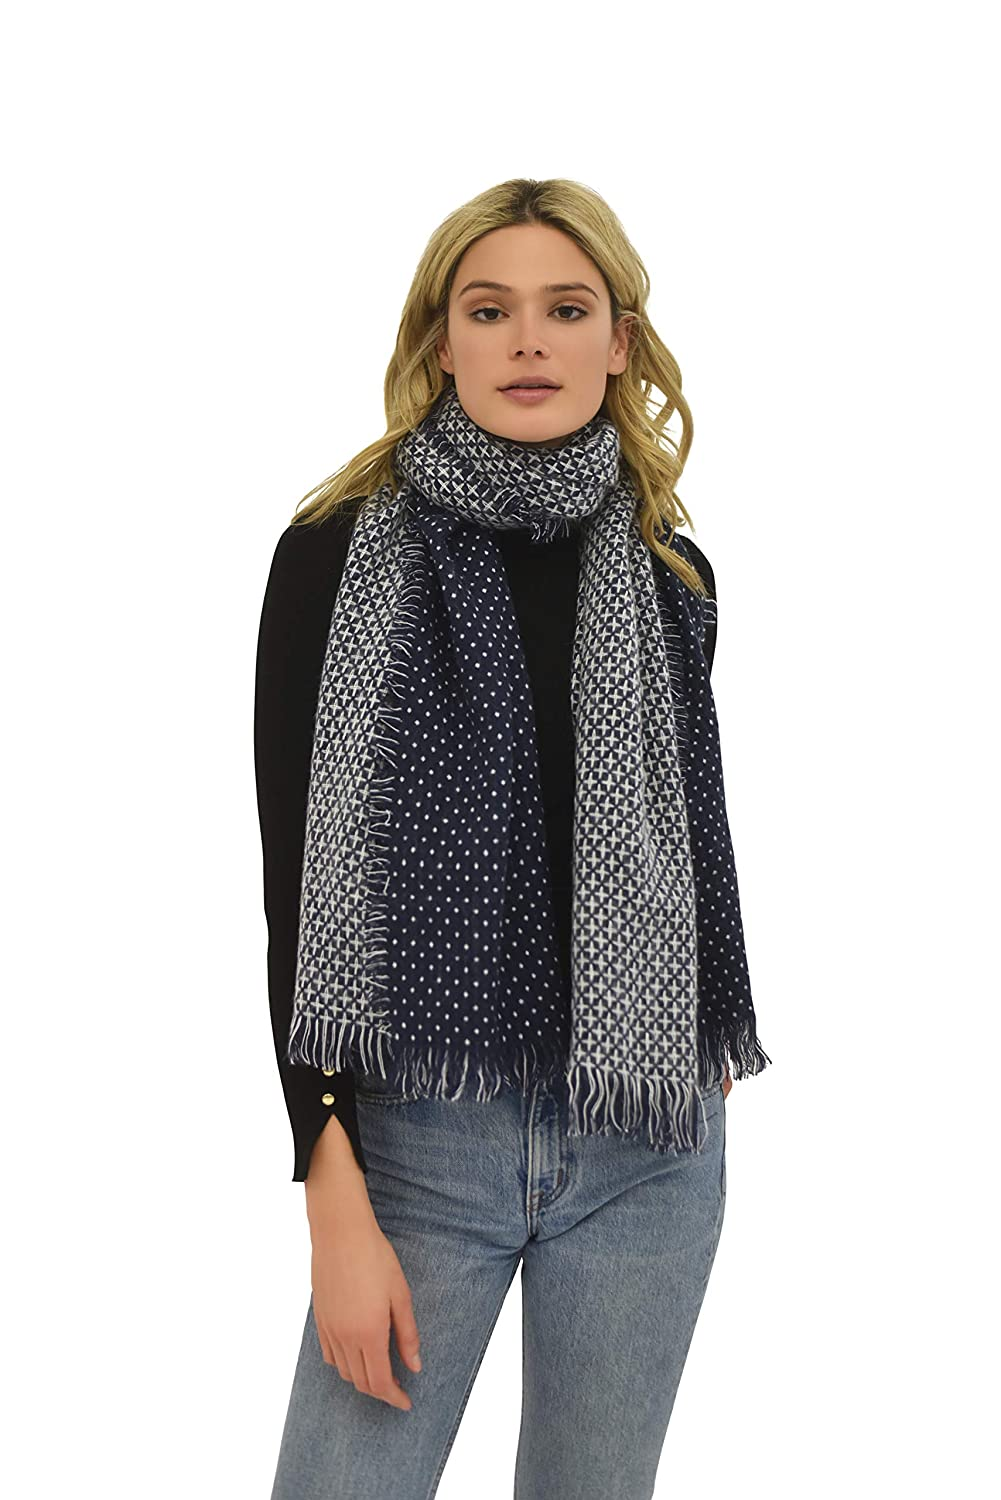 Cold Weather Scarf bluee and White Polka Dot Print